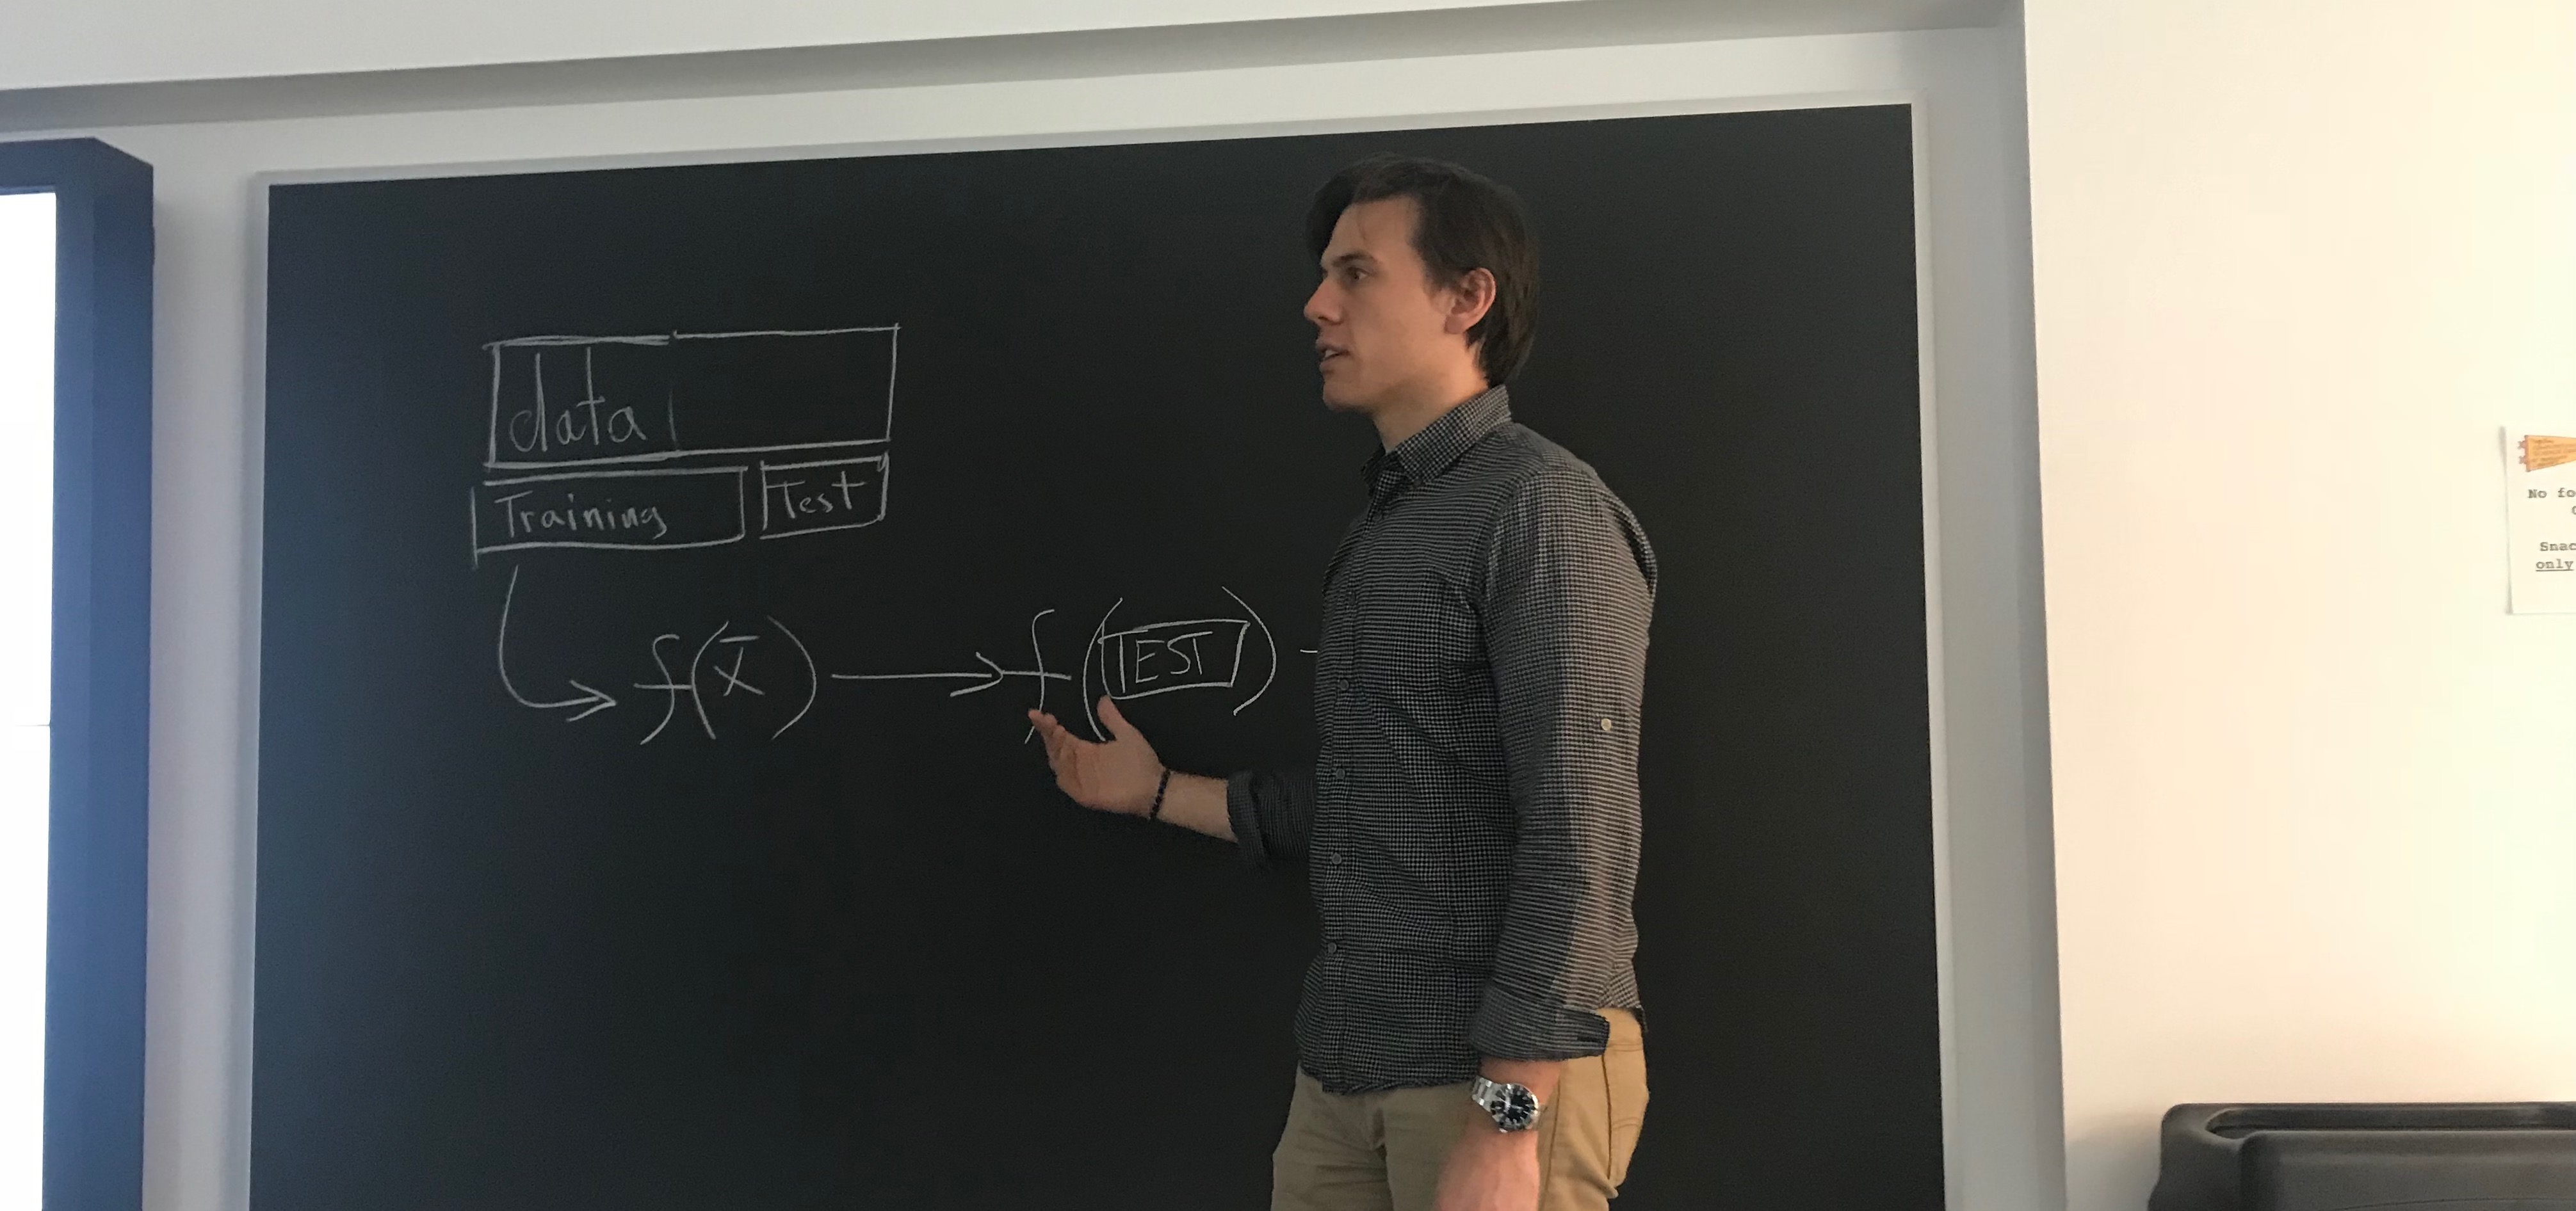 person teaching in front of blackboard, with a data-related diagram on it